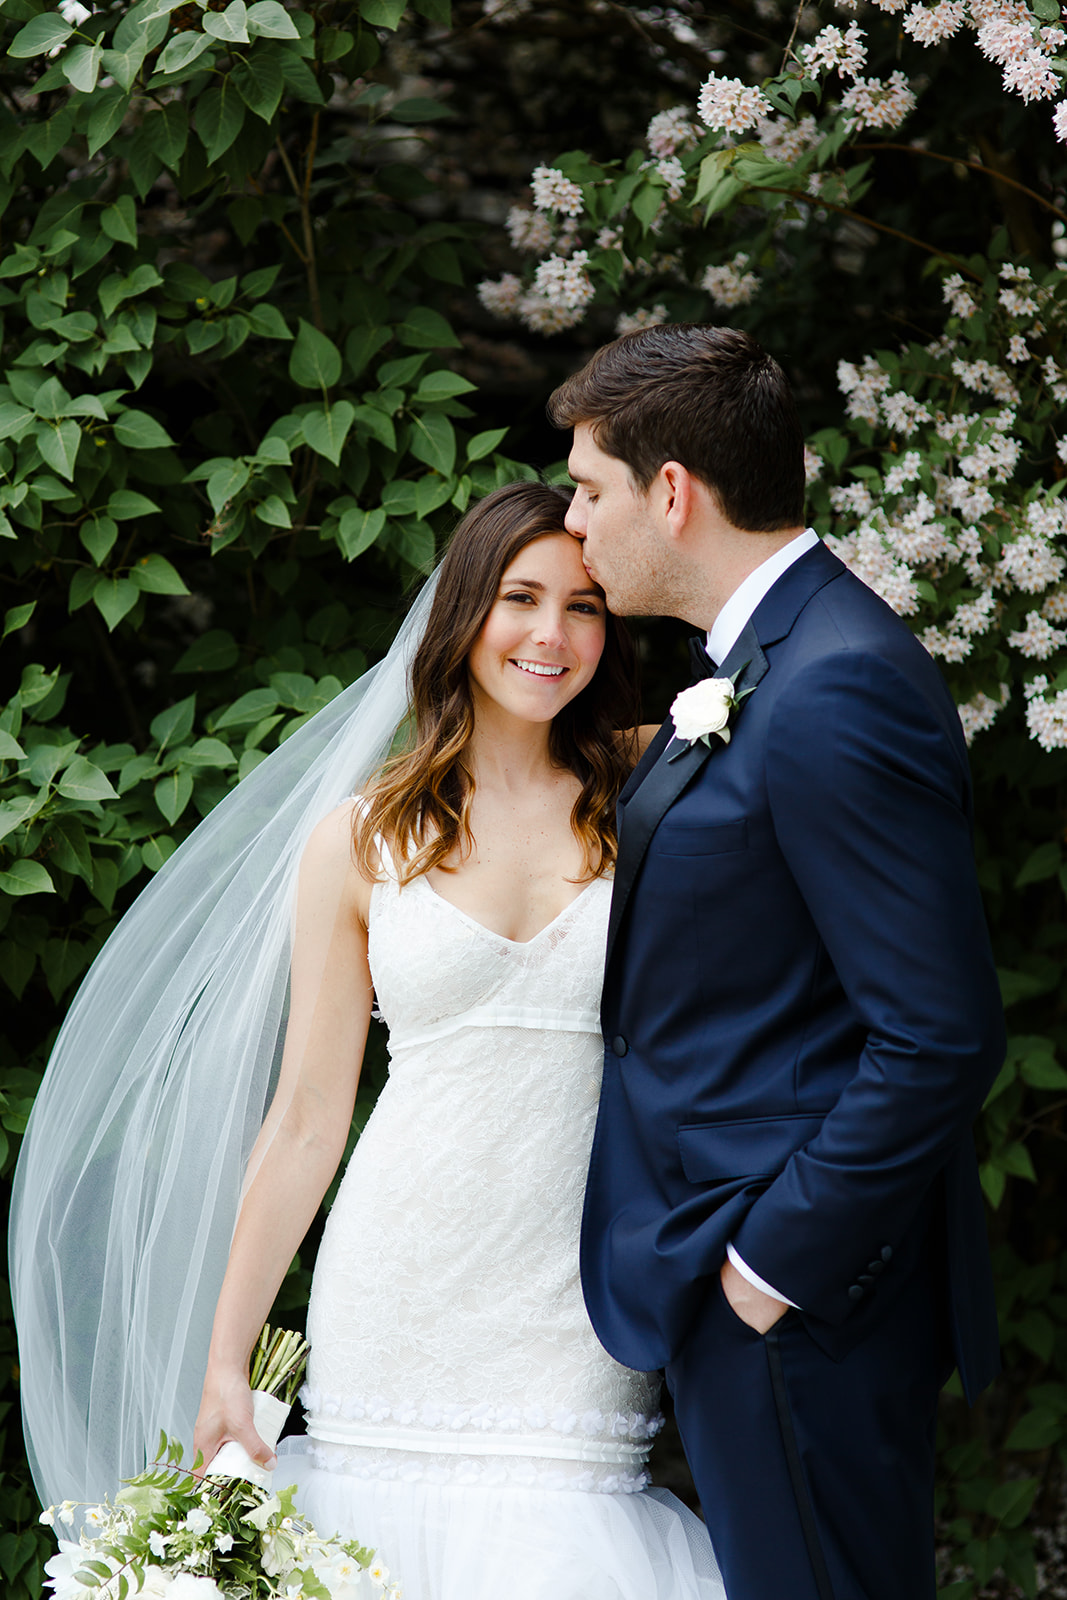 Romantic editorial wedding portraits of a bride and groom in Wisconsin